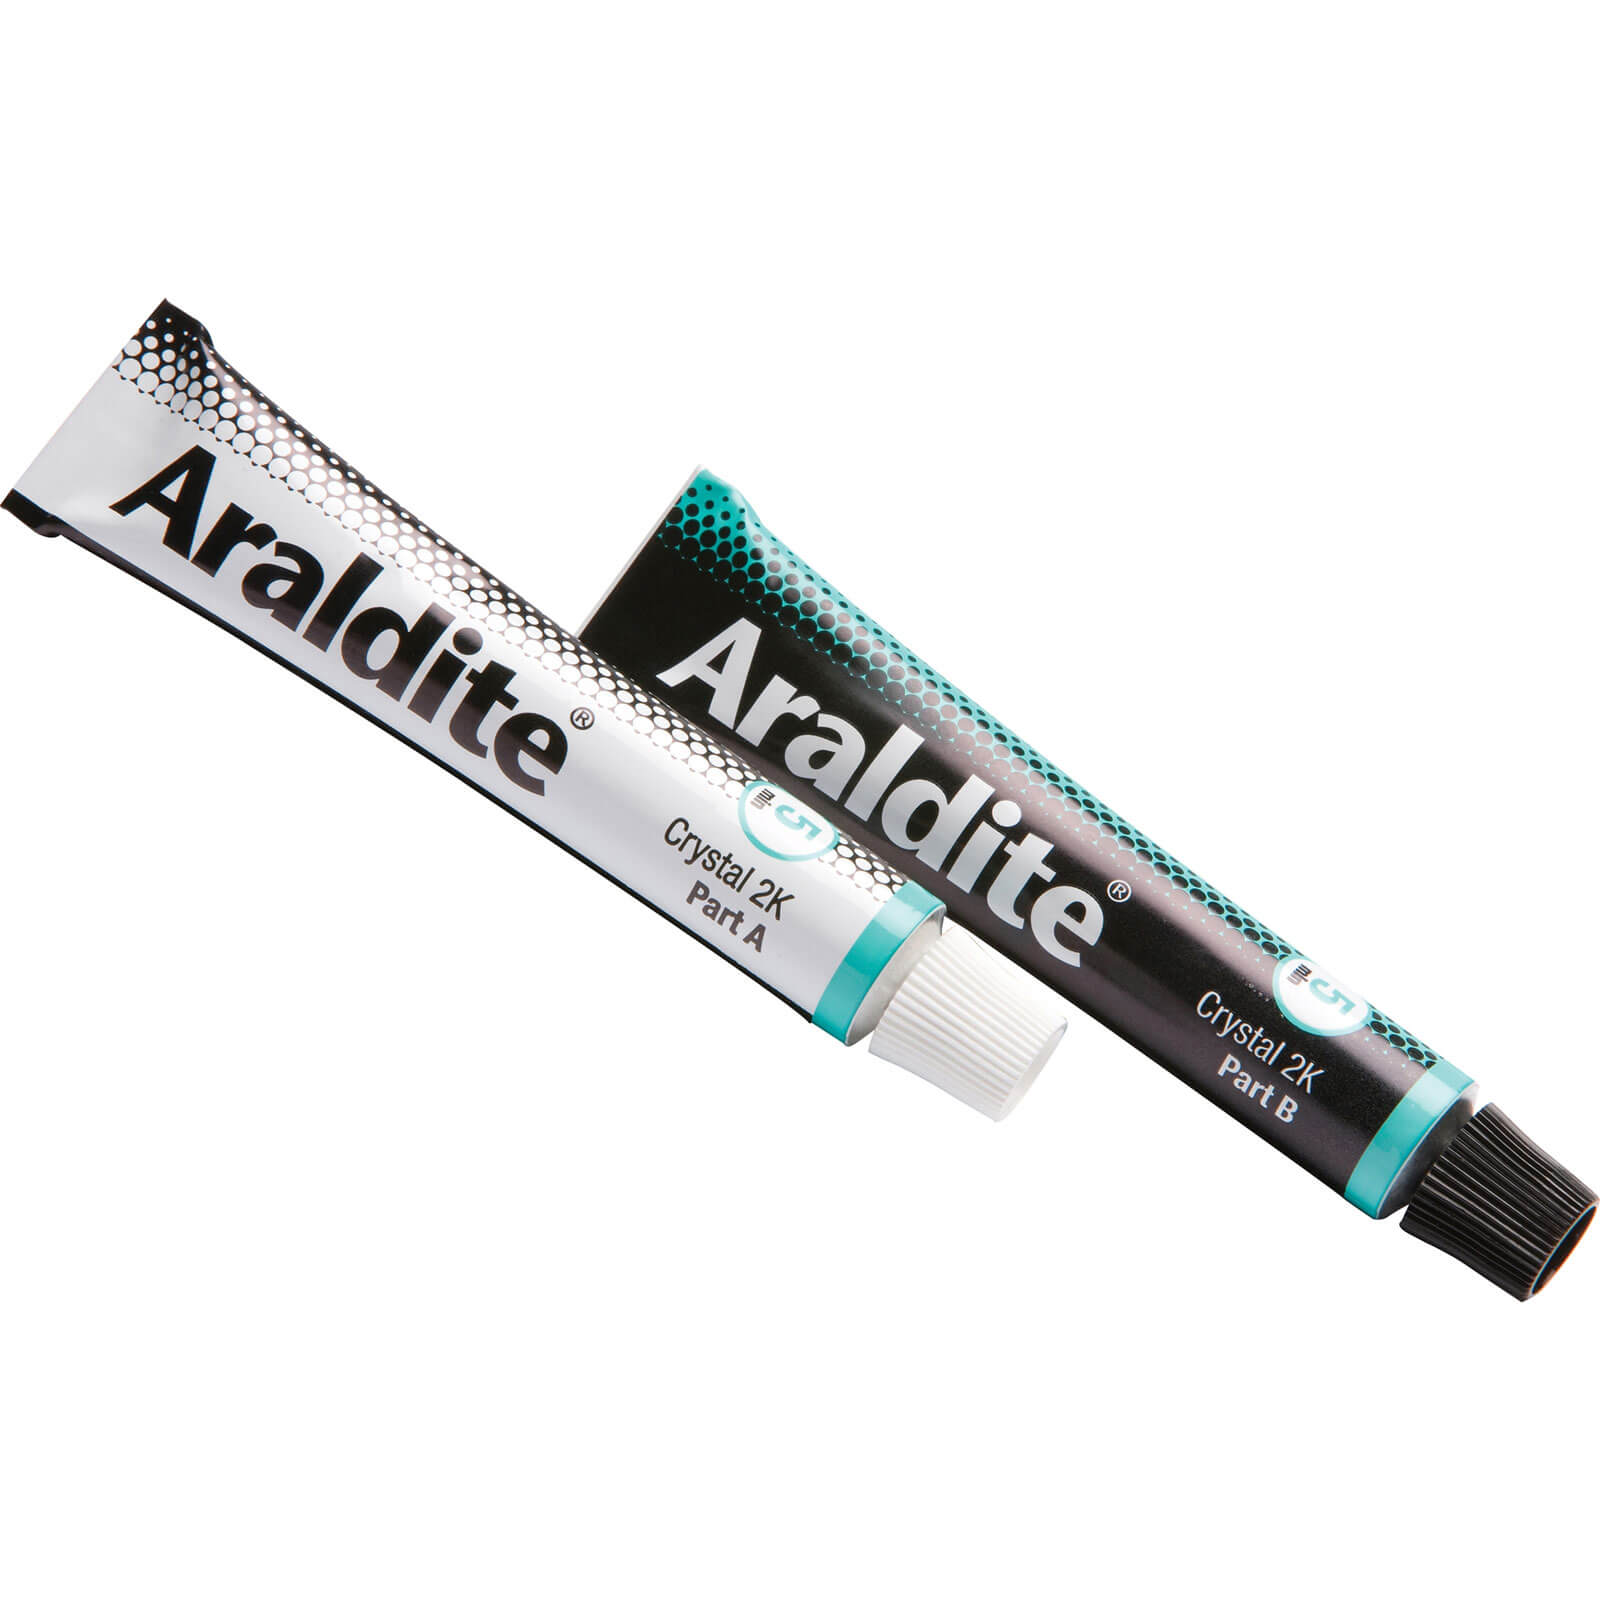 Araldite Crystal Two Component Adhesive 2 x 15ml Tubes